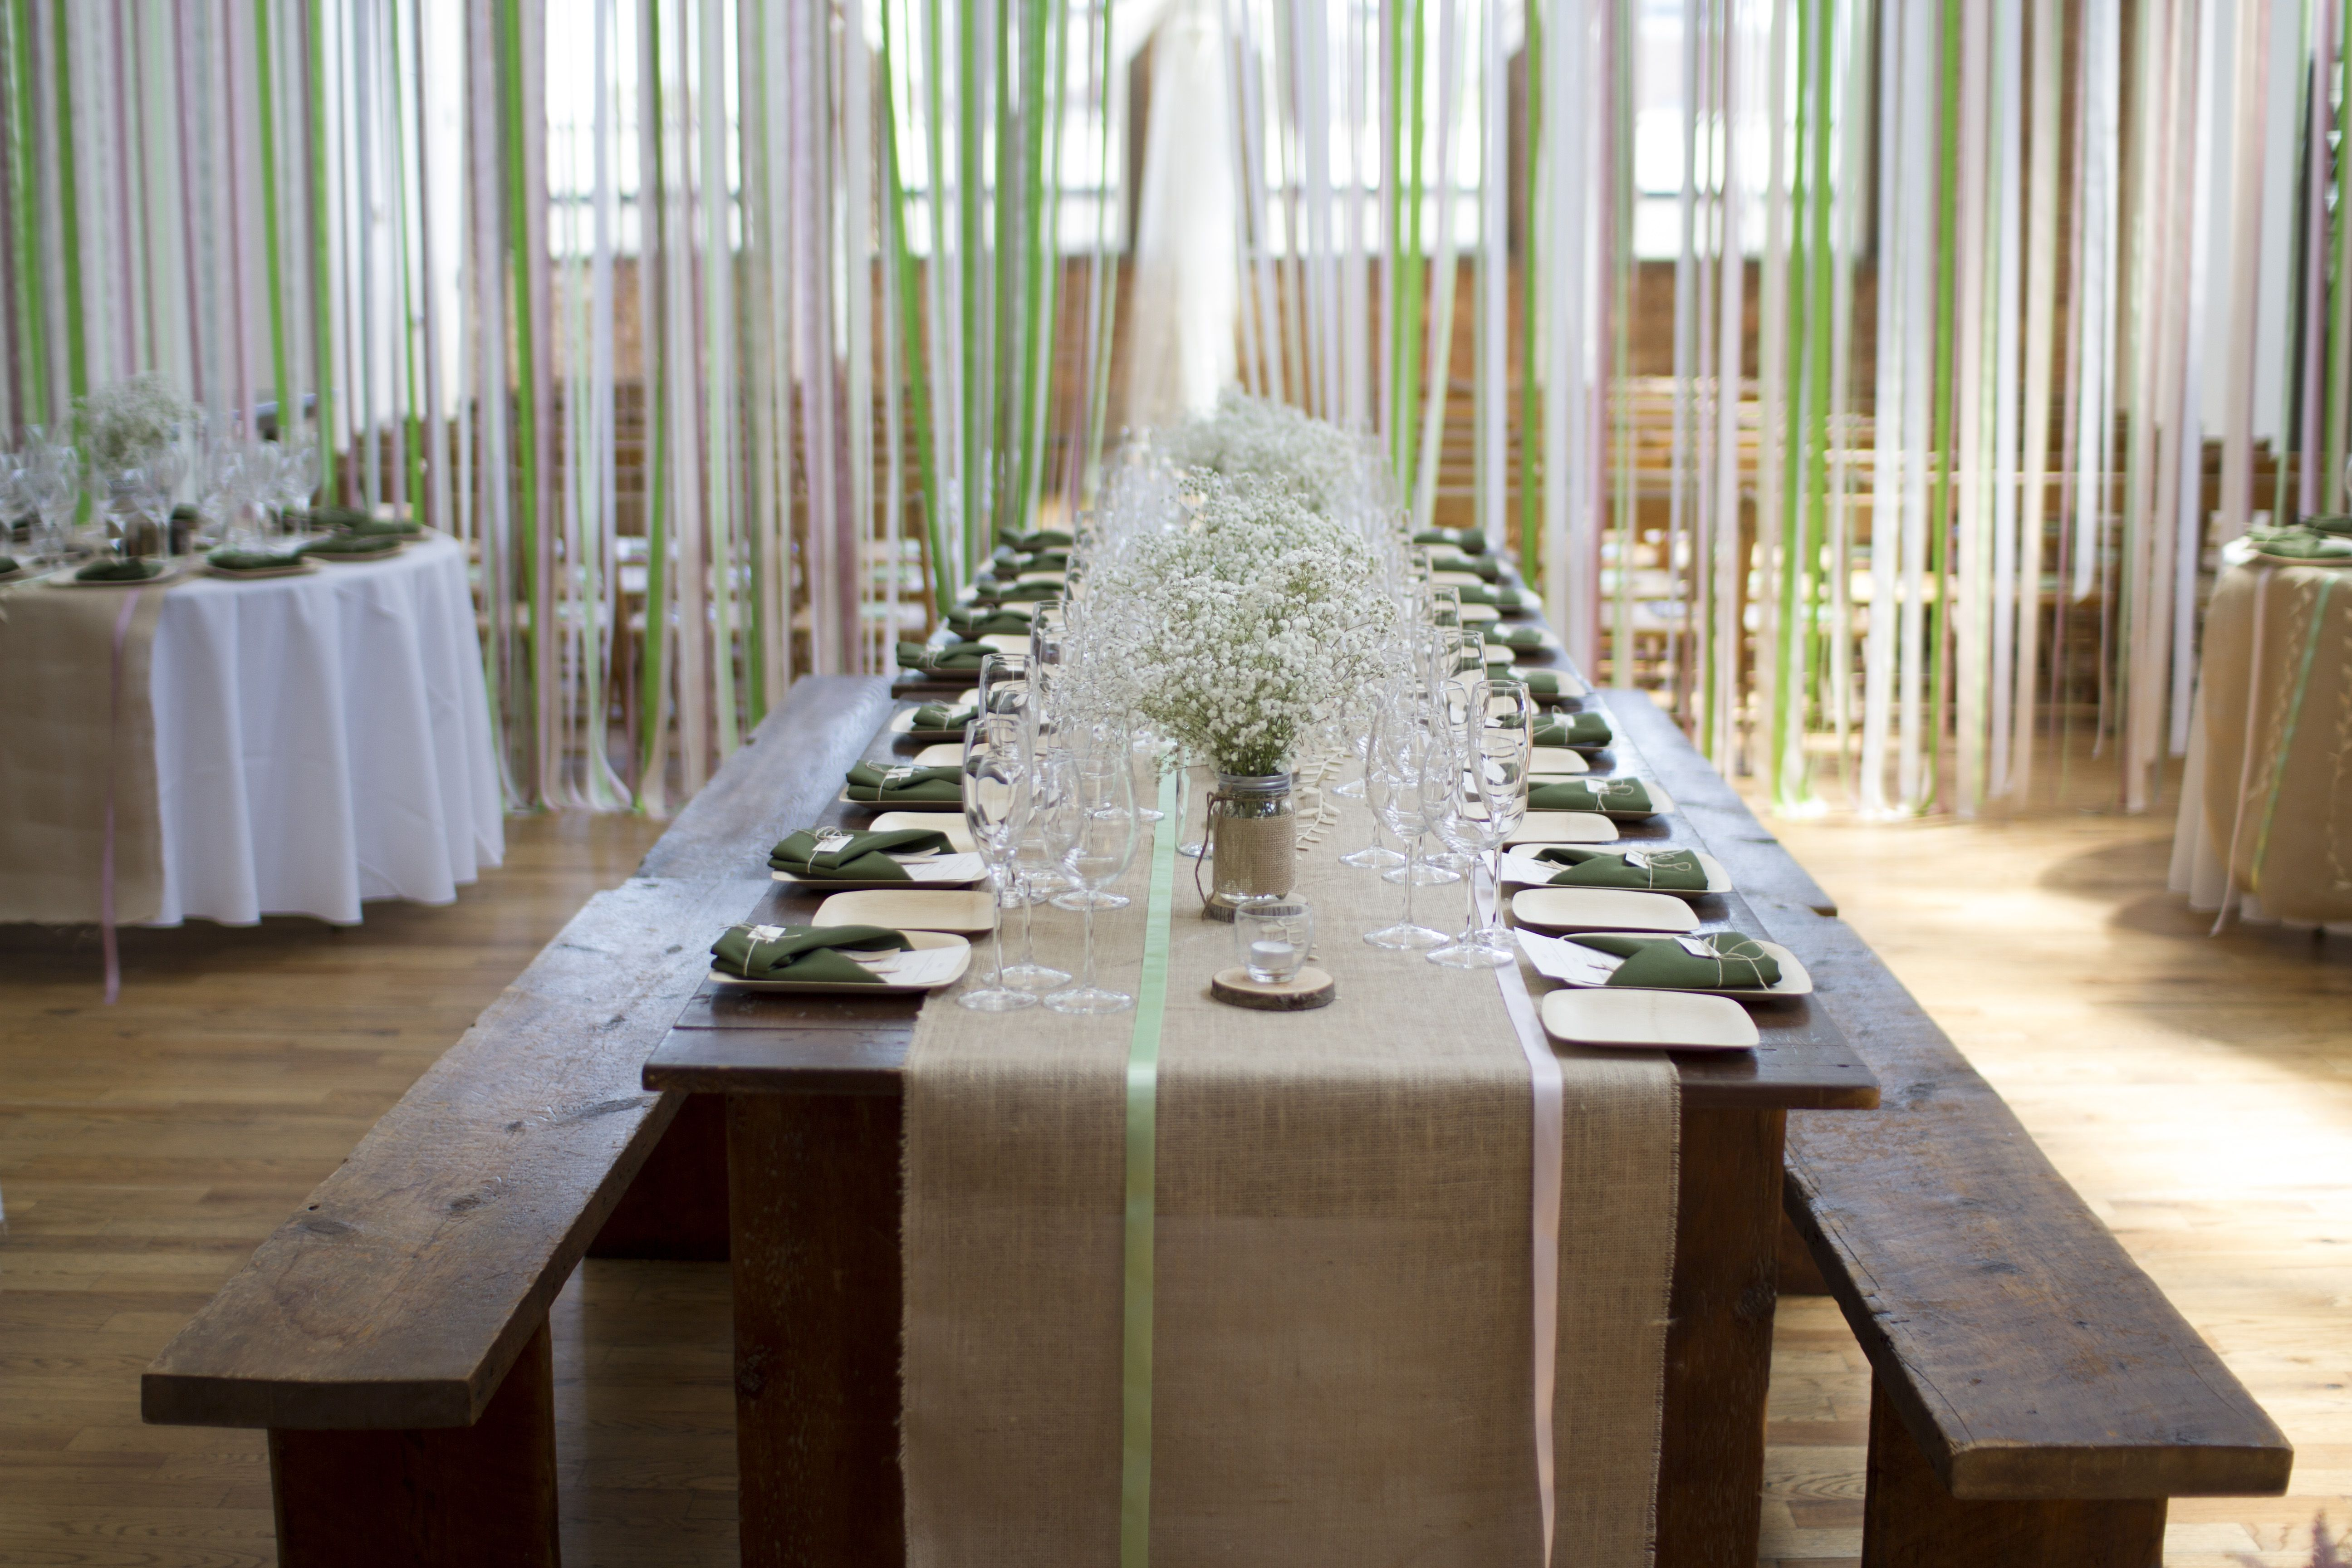 Kitchen Chicago Table Decor Wedding Table Decorations Decor Table